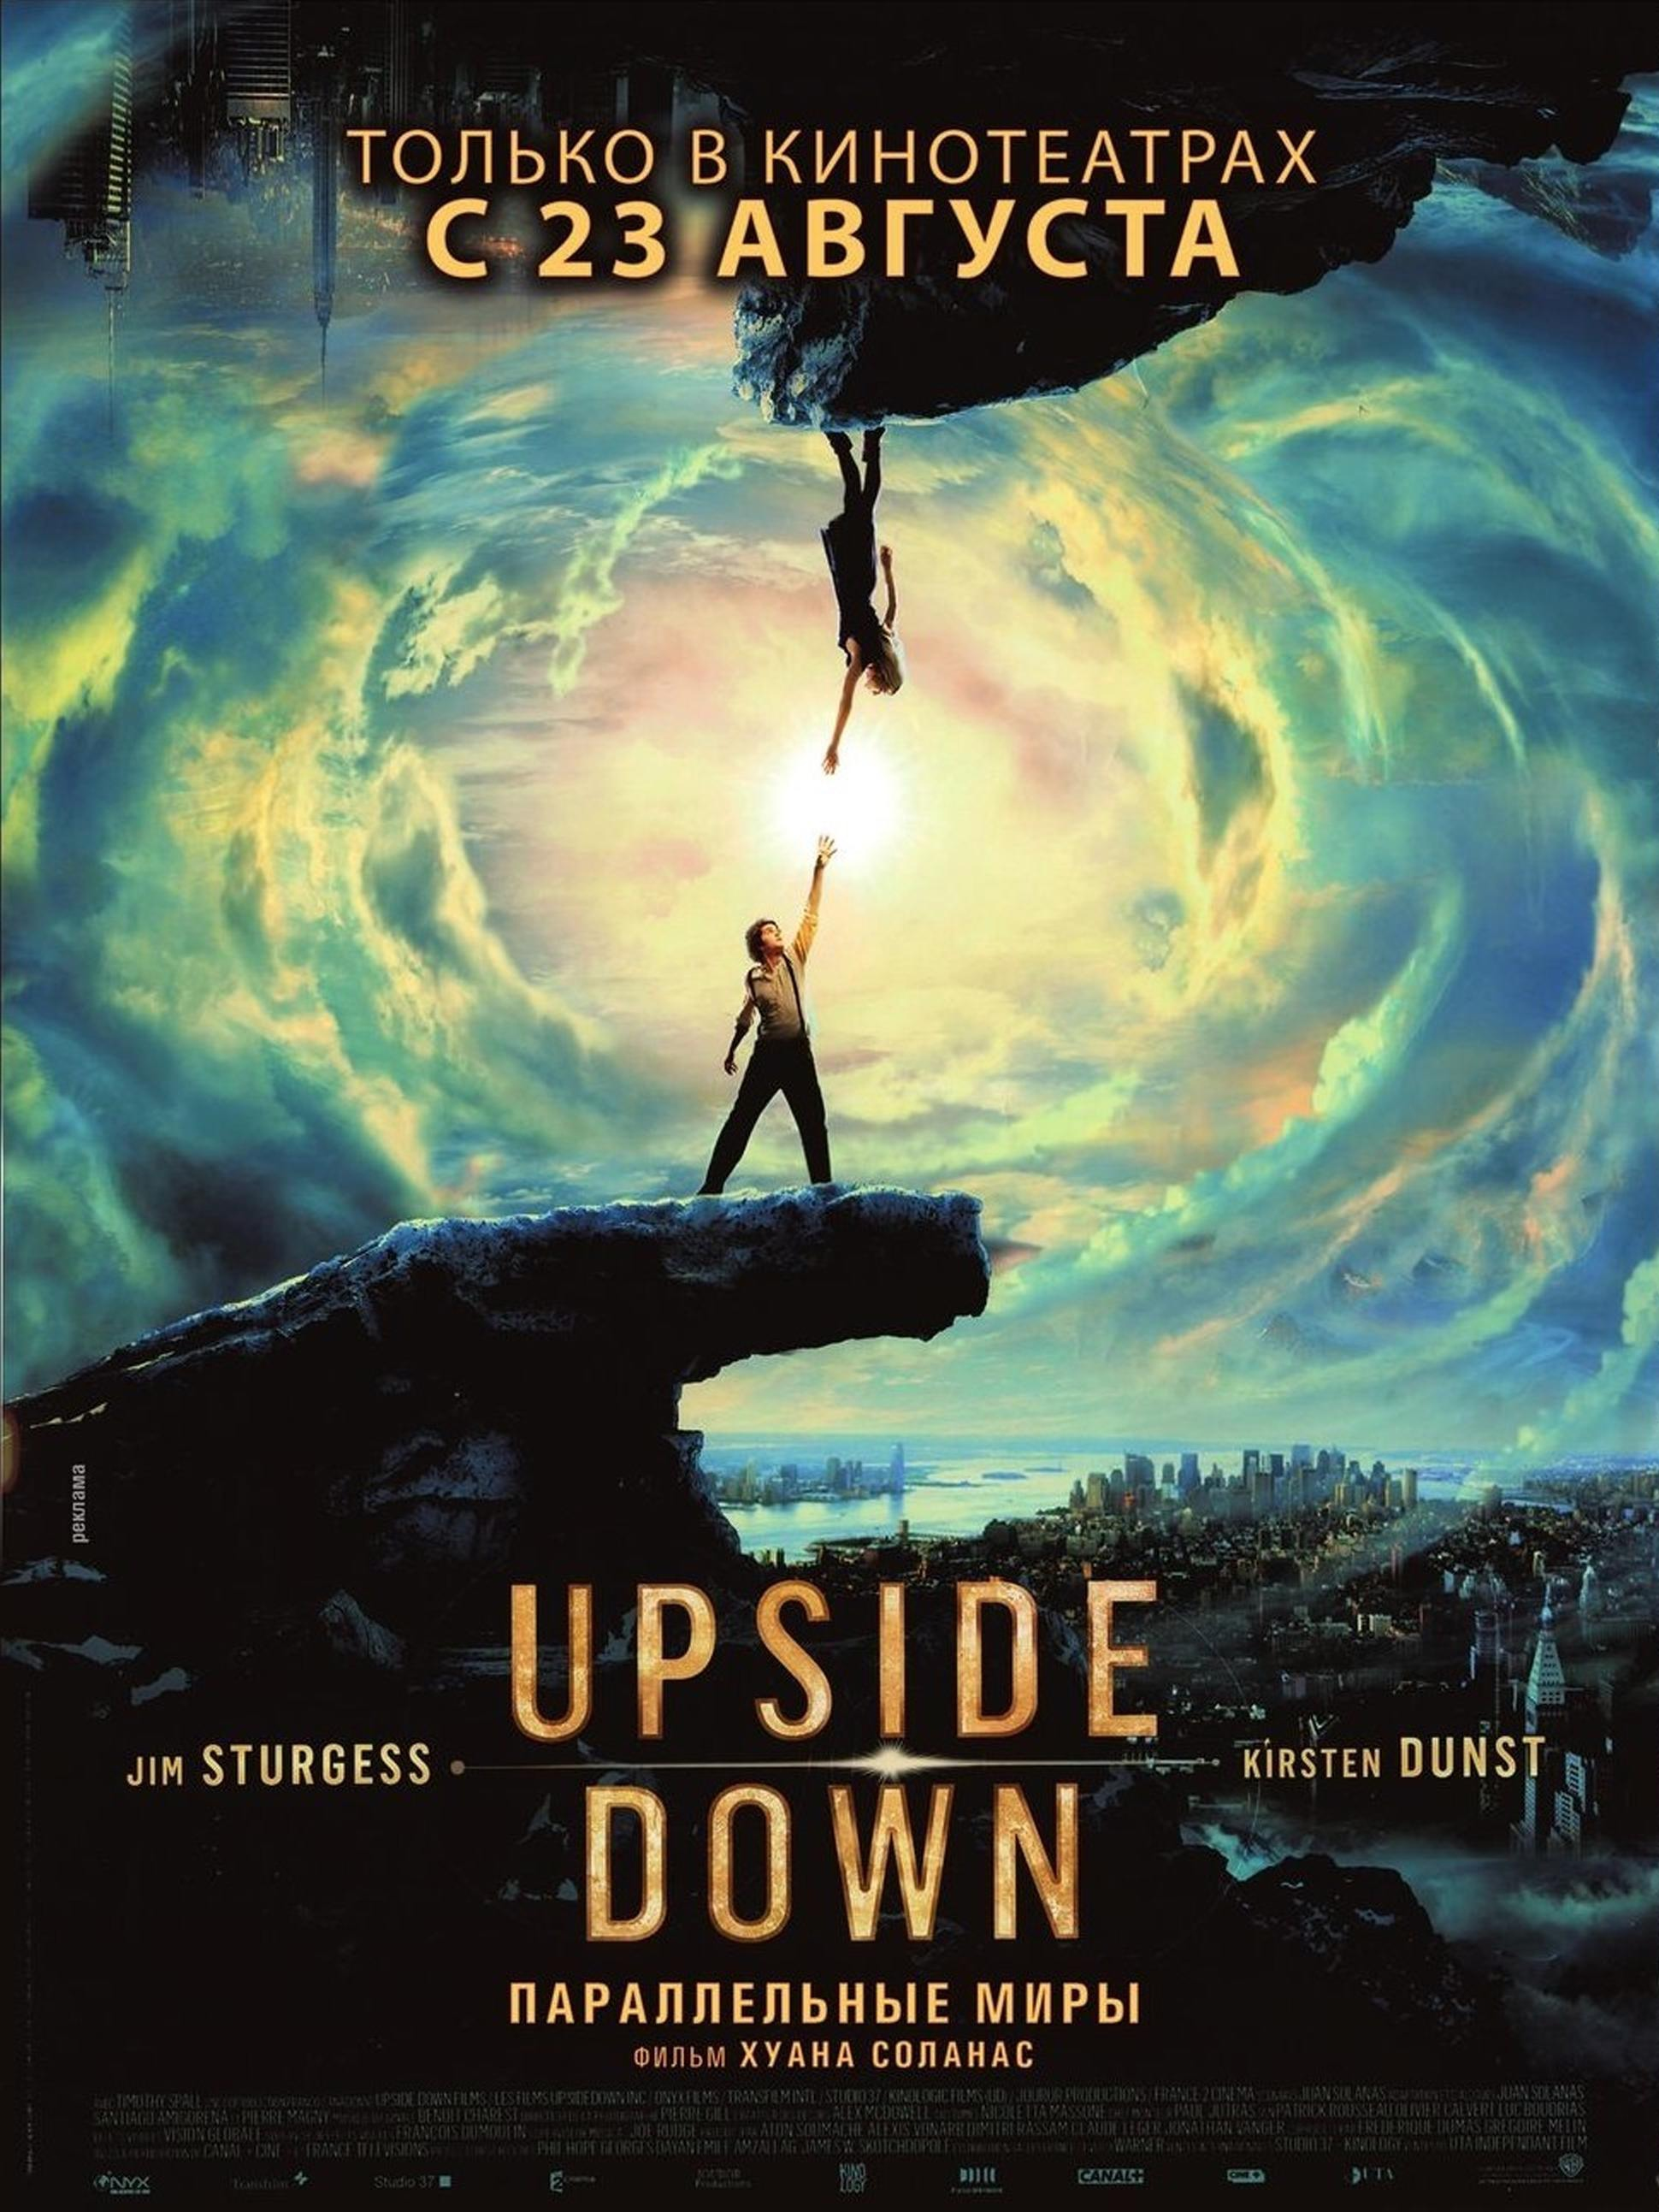 Upside Down - Movie Poster #2 (Original)